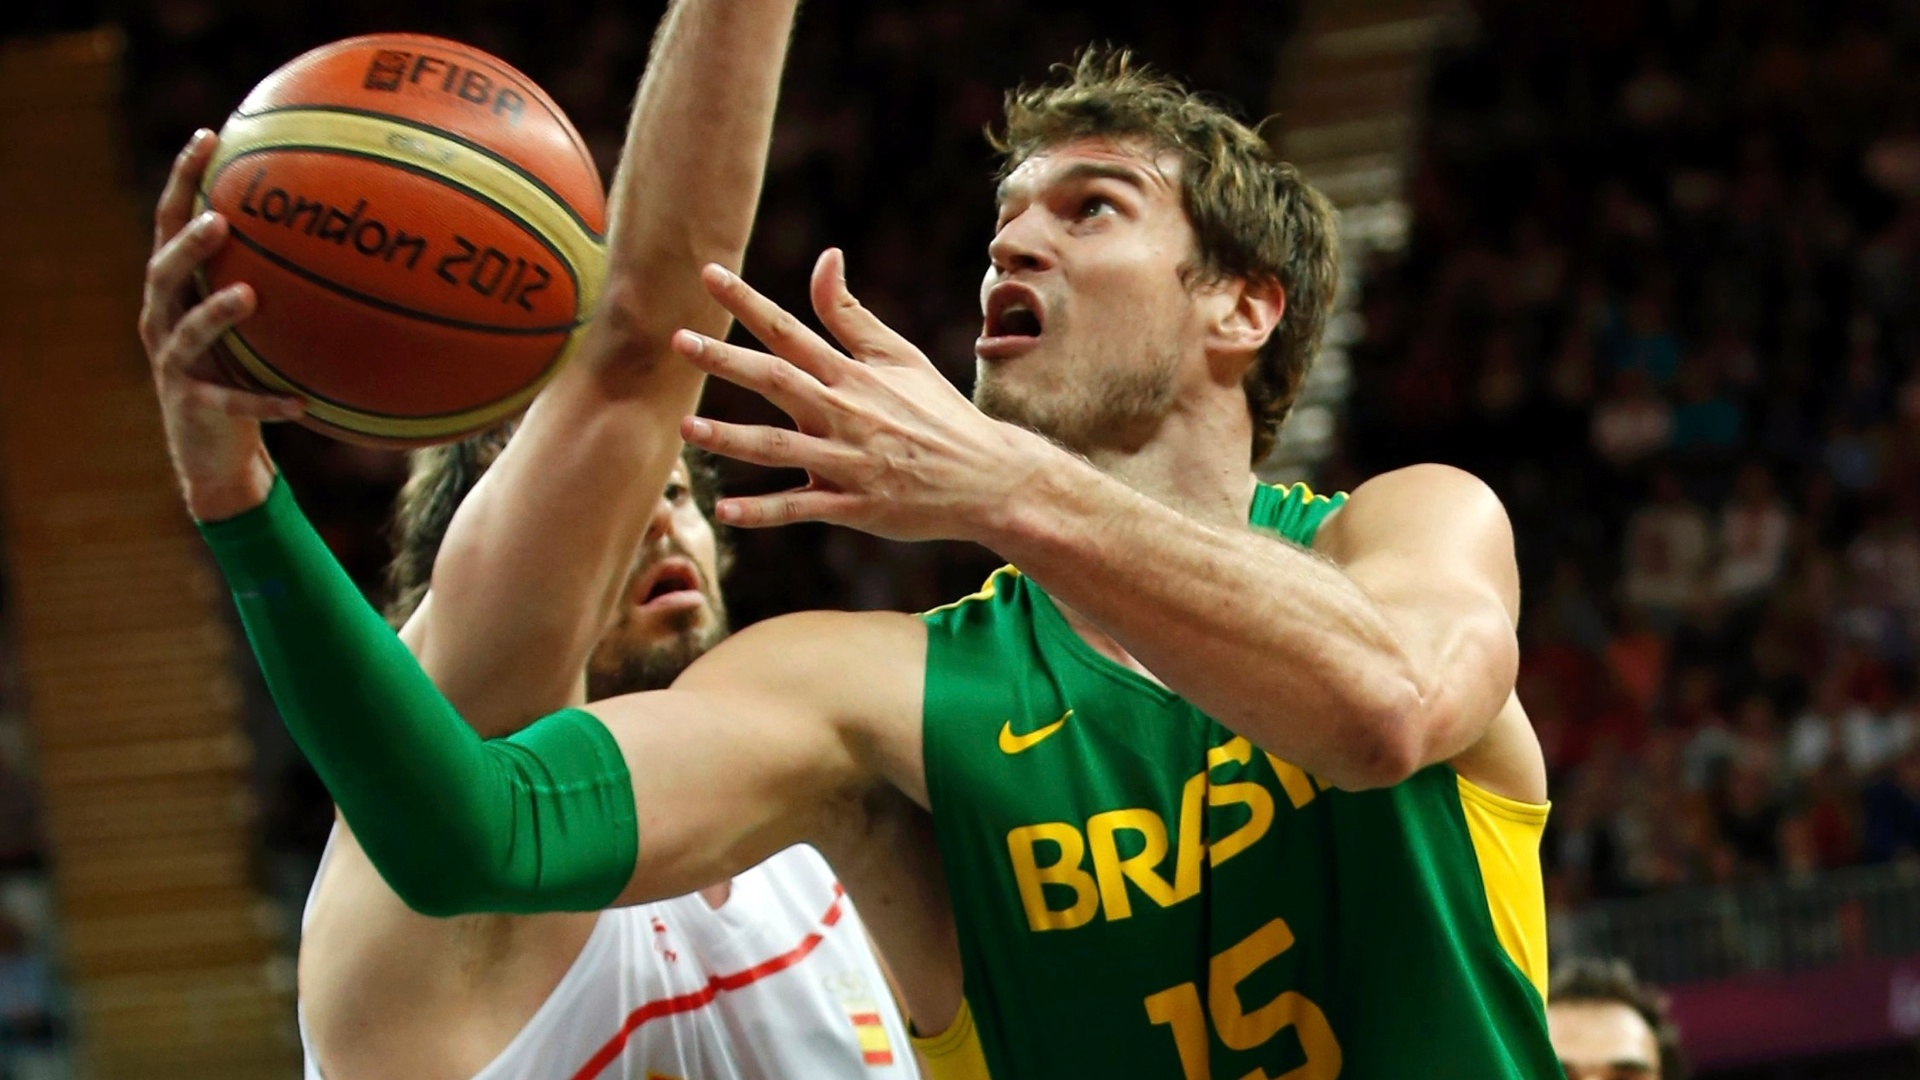 Piv brasileiro Thiago Splitter escapa de marcao espanhola na ltima partida da fase de grupos em Londres